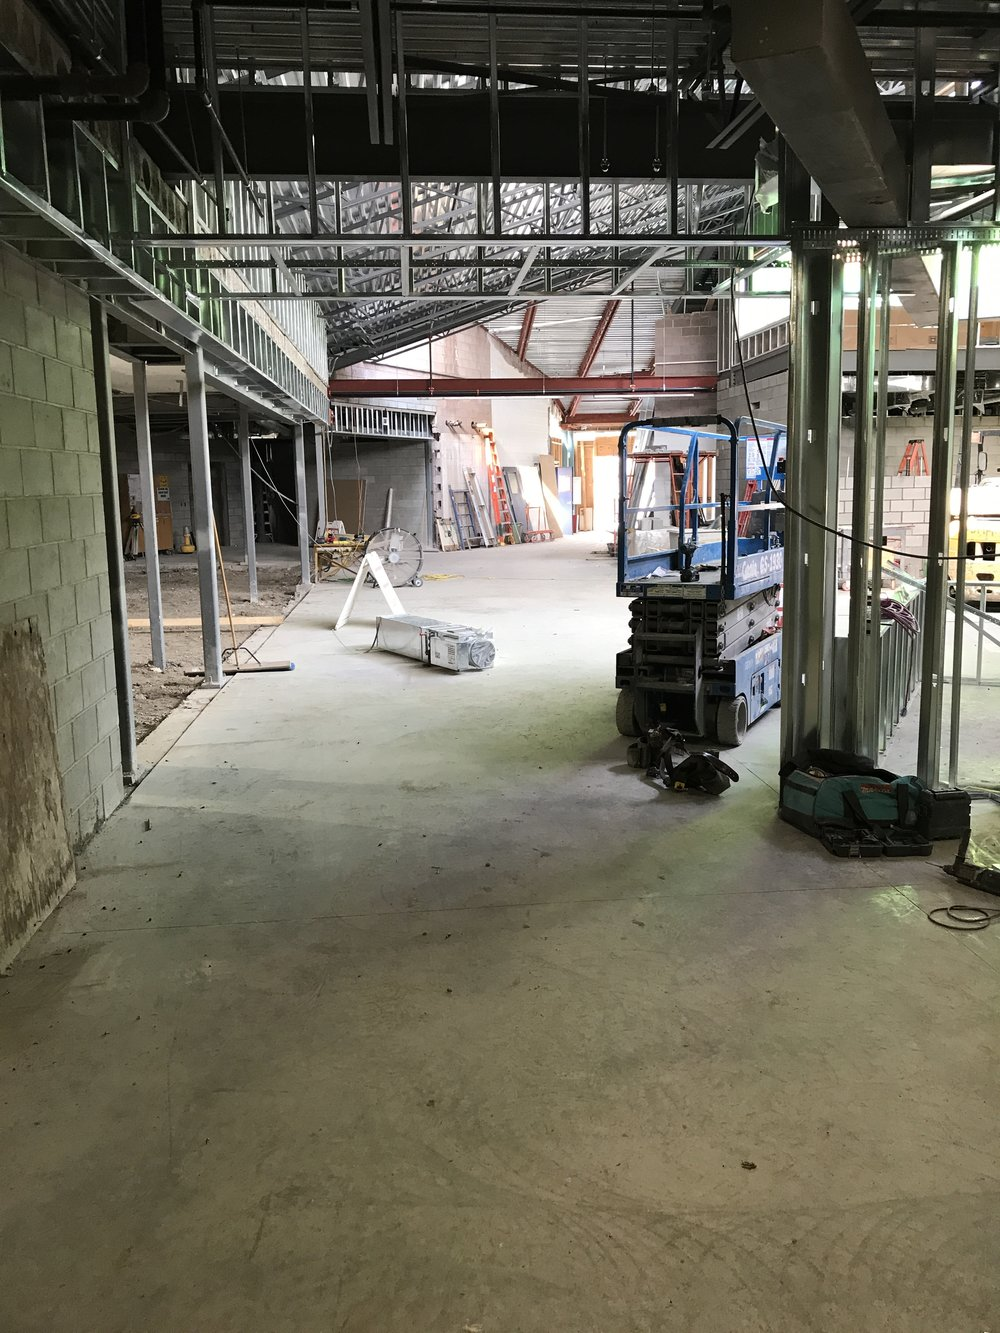 Looking west towards our Learning Commons (on the left), commercial kitchen/eatery (on the right), and our student gathering section in between the two.